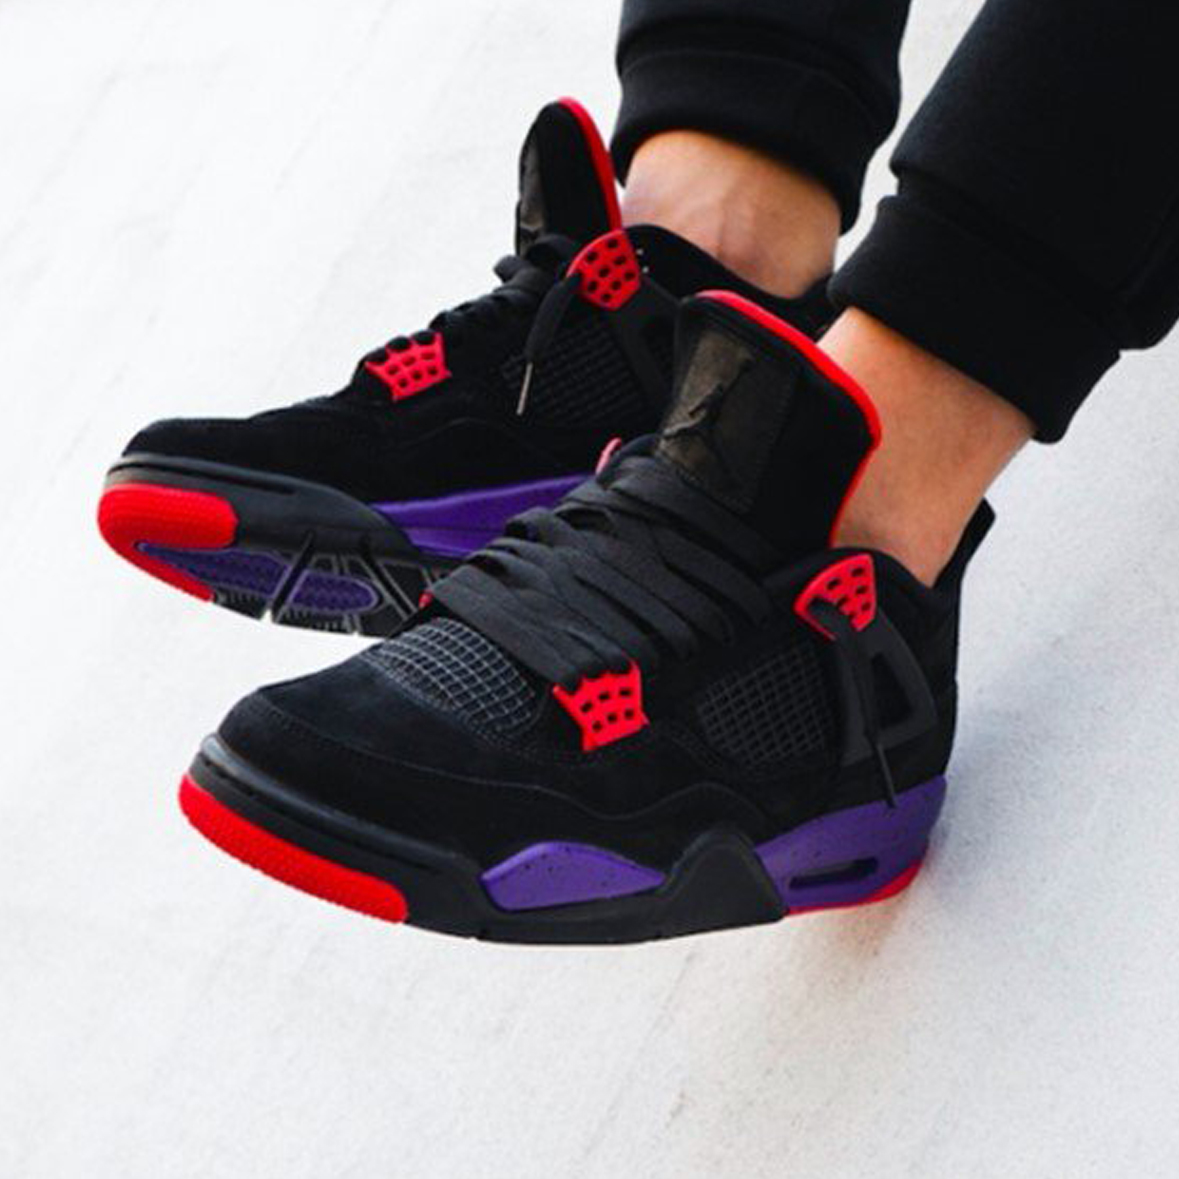 pretty nice ed0c7 4440b AIR JORDAN 4 RAPTORS FOR BELOW RETAIL - You Seen The Price